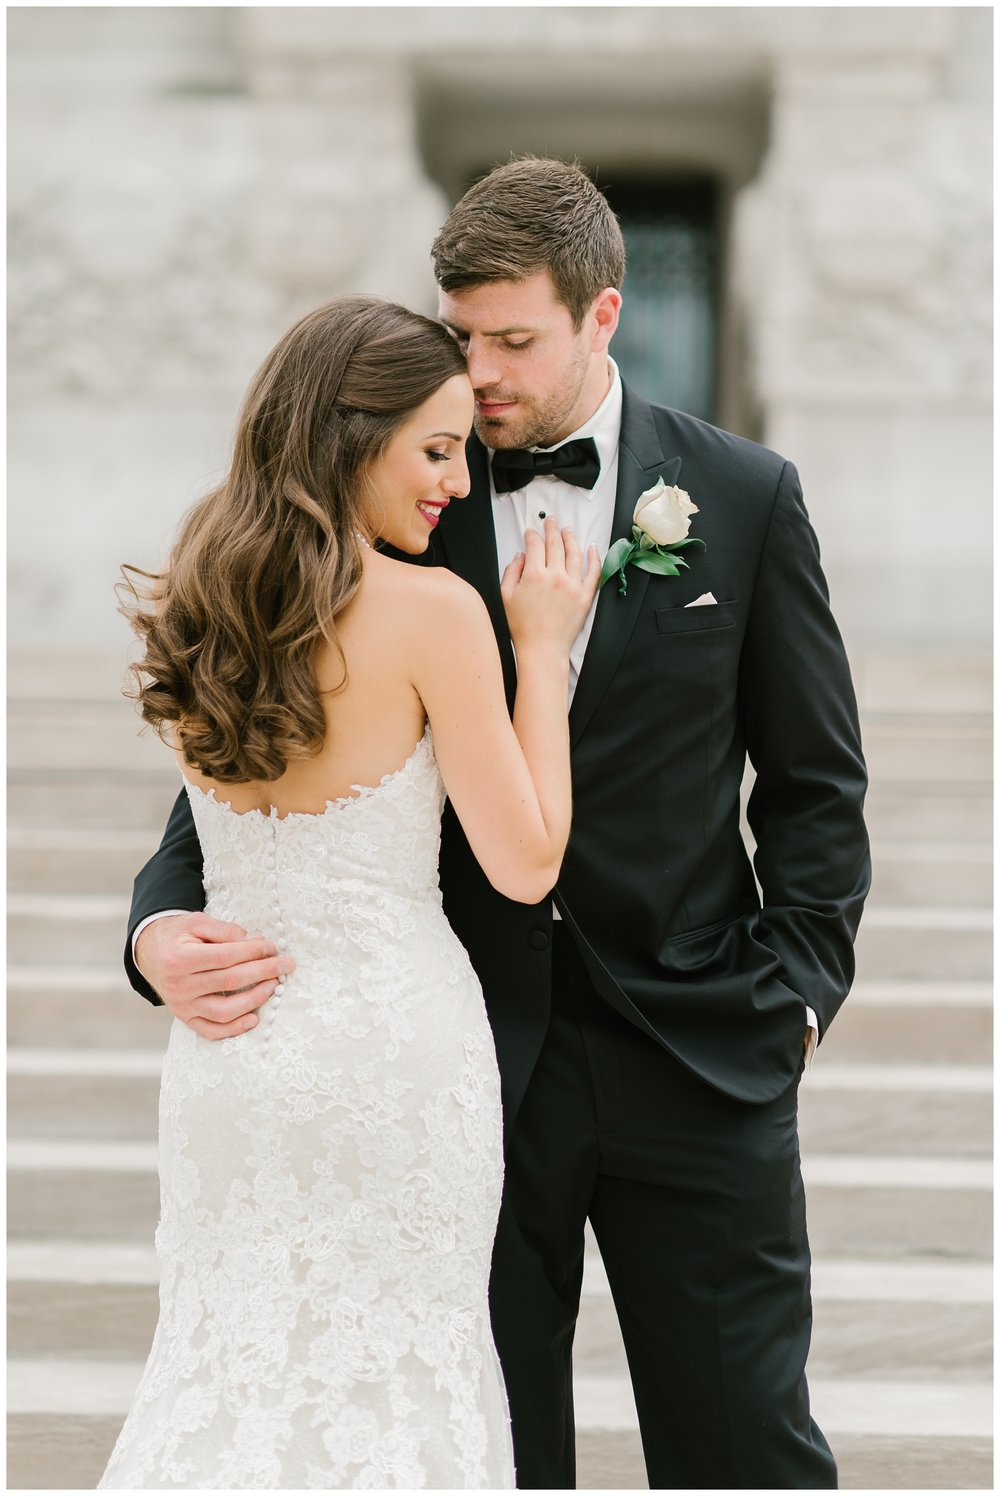 Rebecca_Bridges_Photography_Indianapolis_Wedding_Photographer_6842.jpg